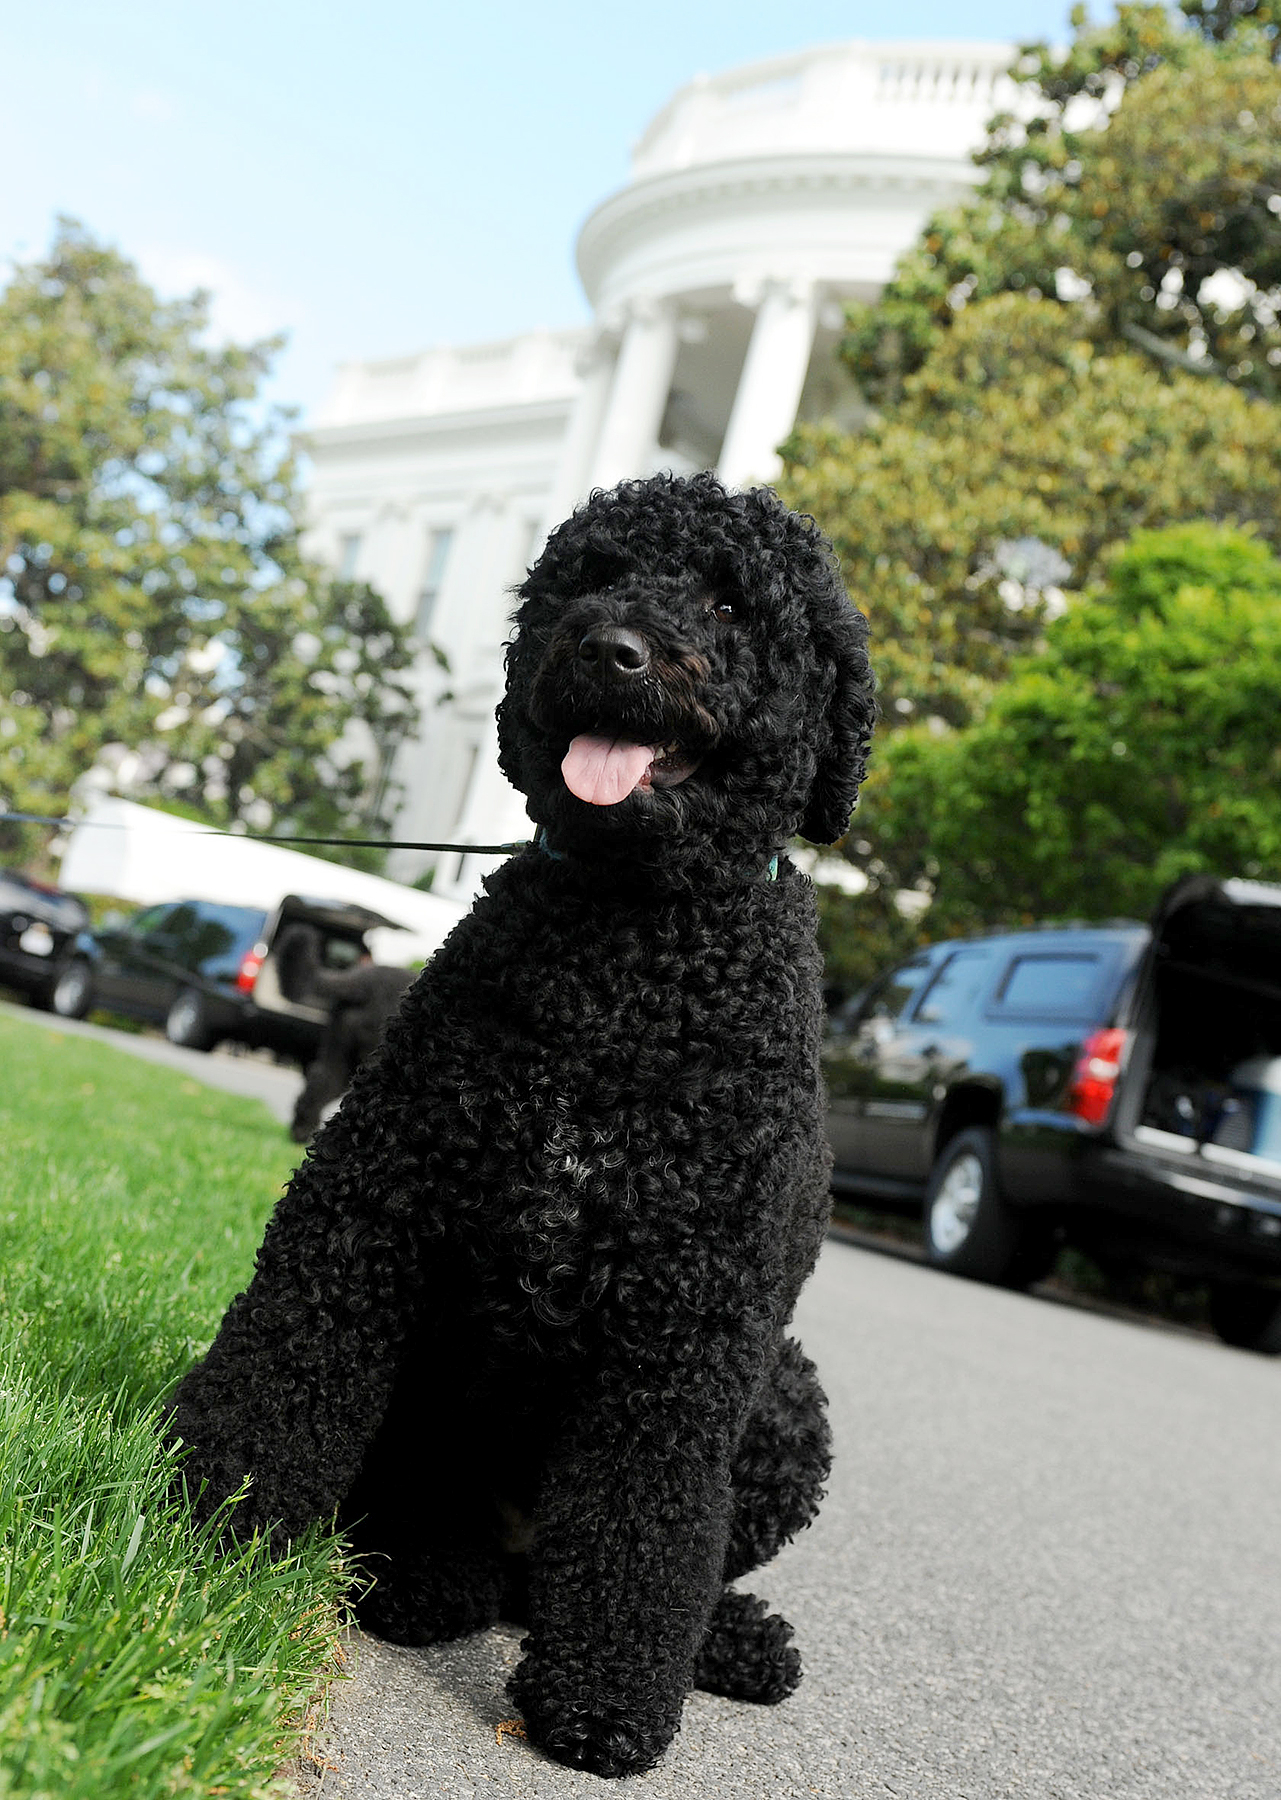 Obama family dog Sunny takes a walk on the South Lawn of the White House on May 17, 2014 in Washington, DC.